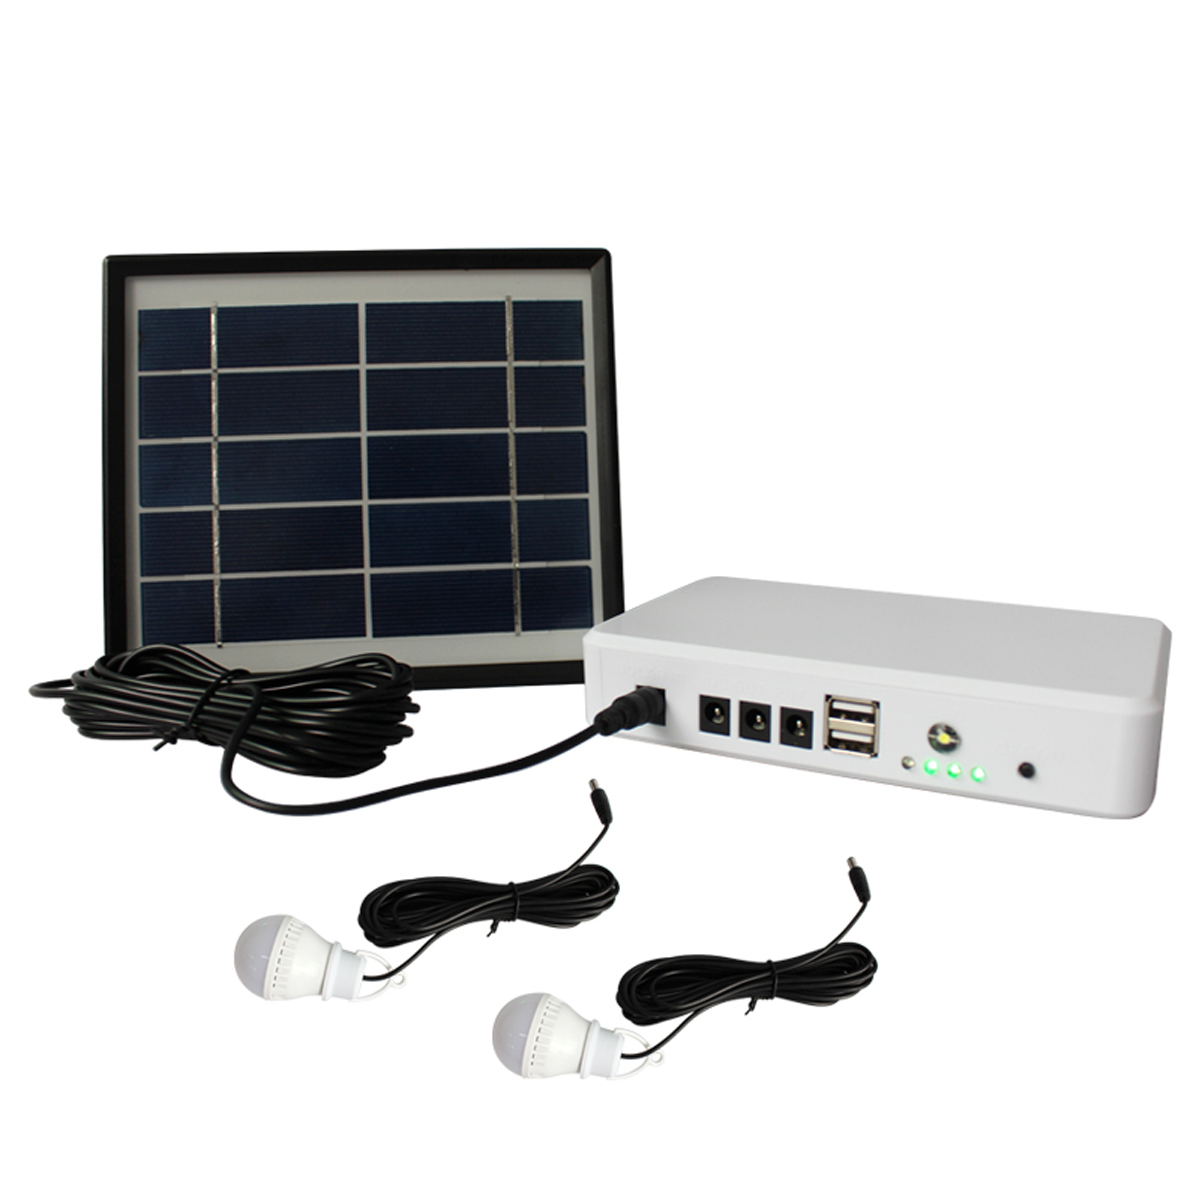 Rechargeable Solar Power Storage Generator with 2 USB Charger and 3 LED Bulbs